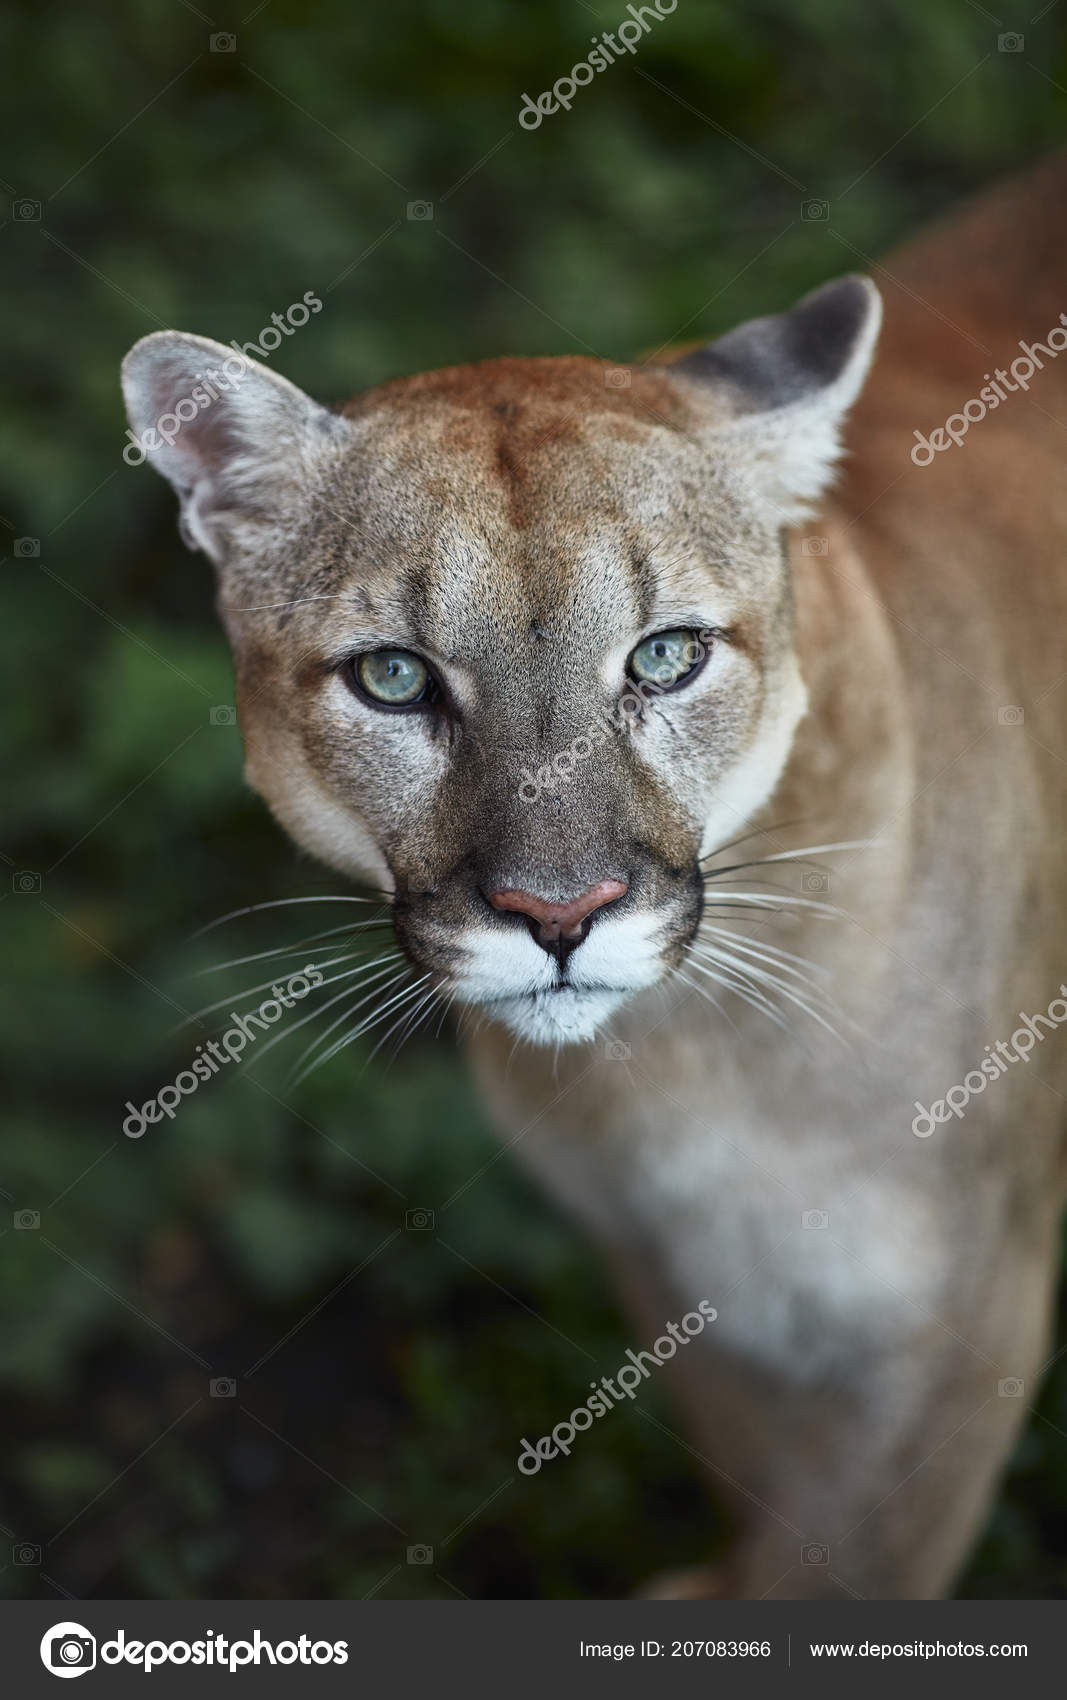 panther vs cougar vs mountain lion